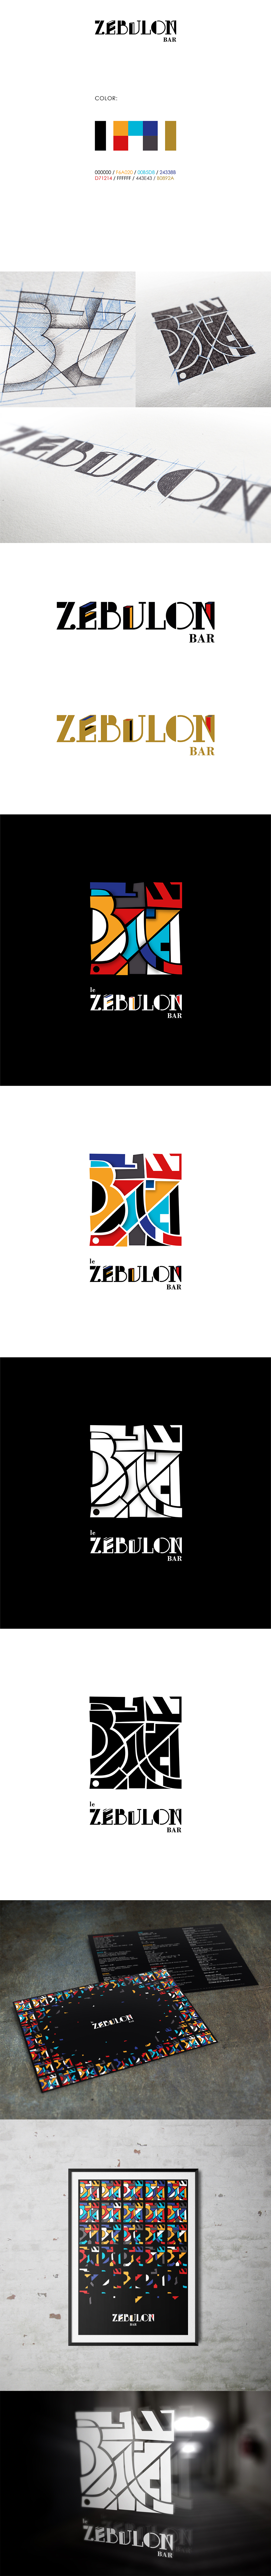 Zébulon bar